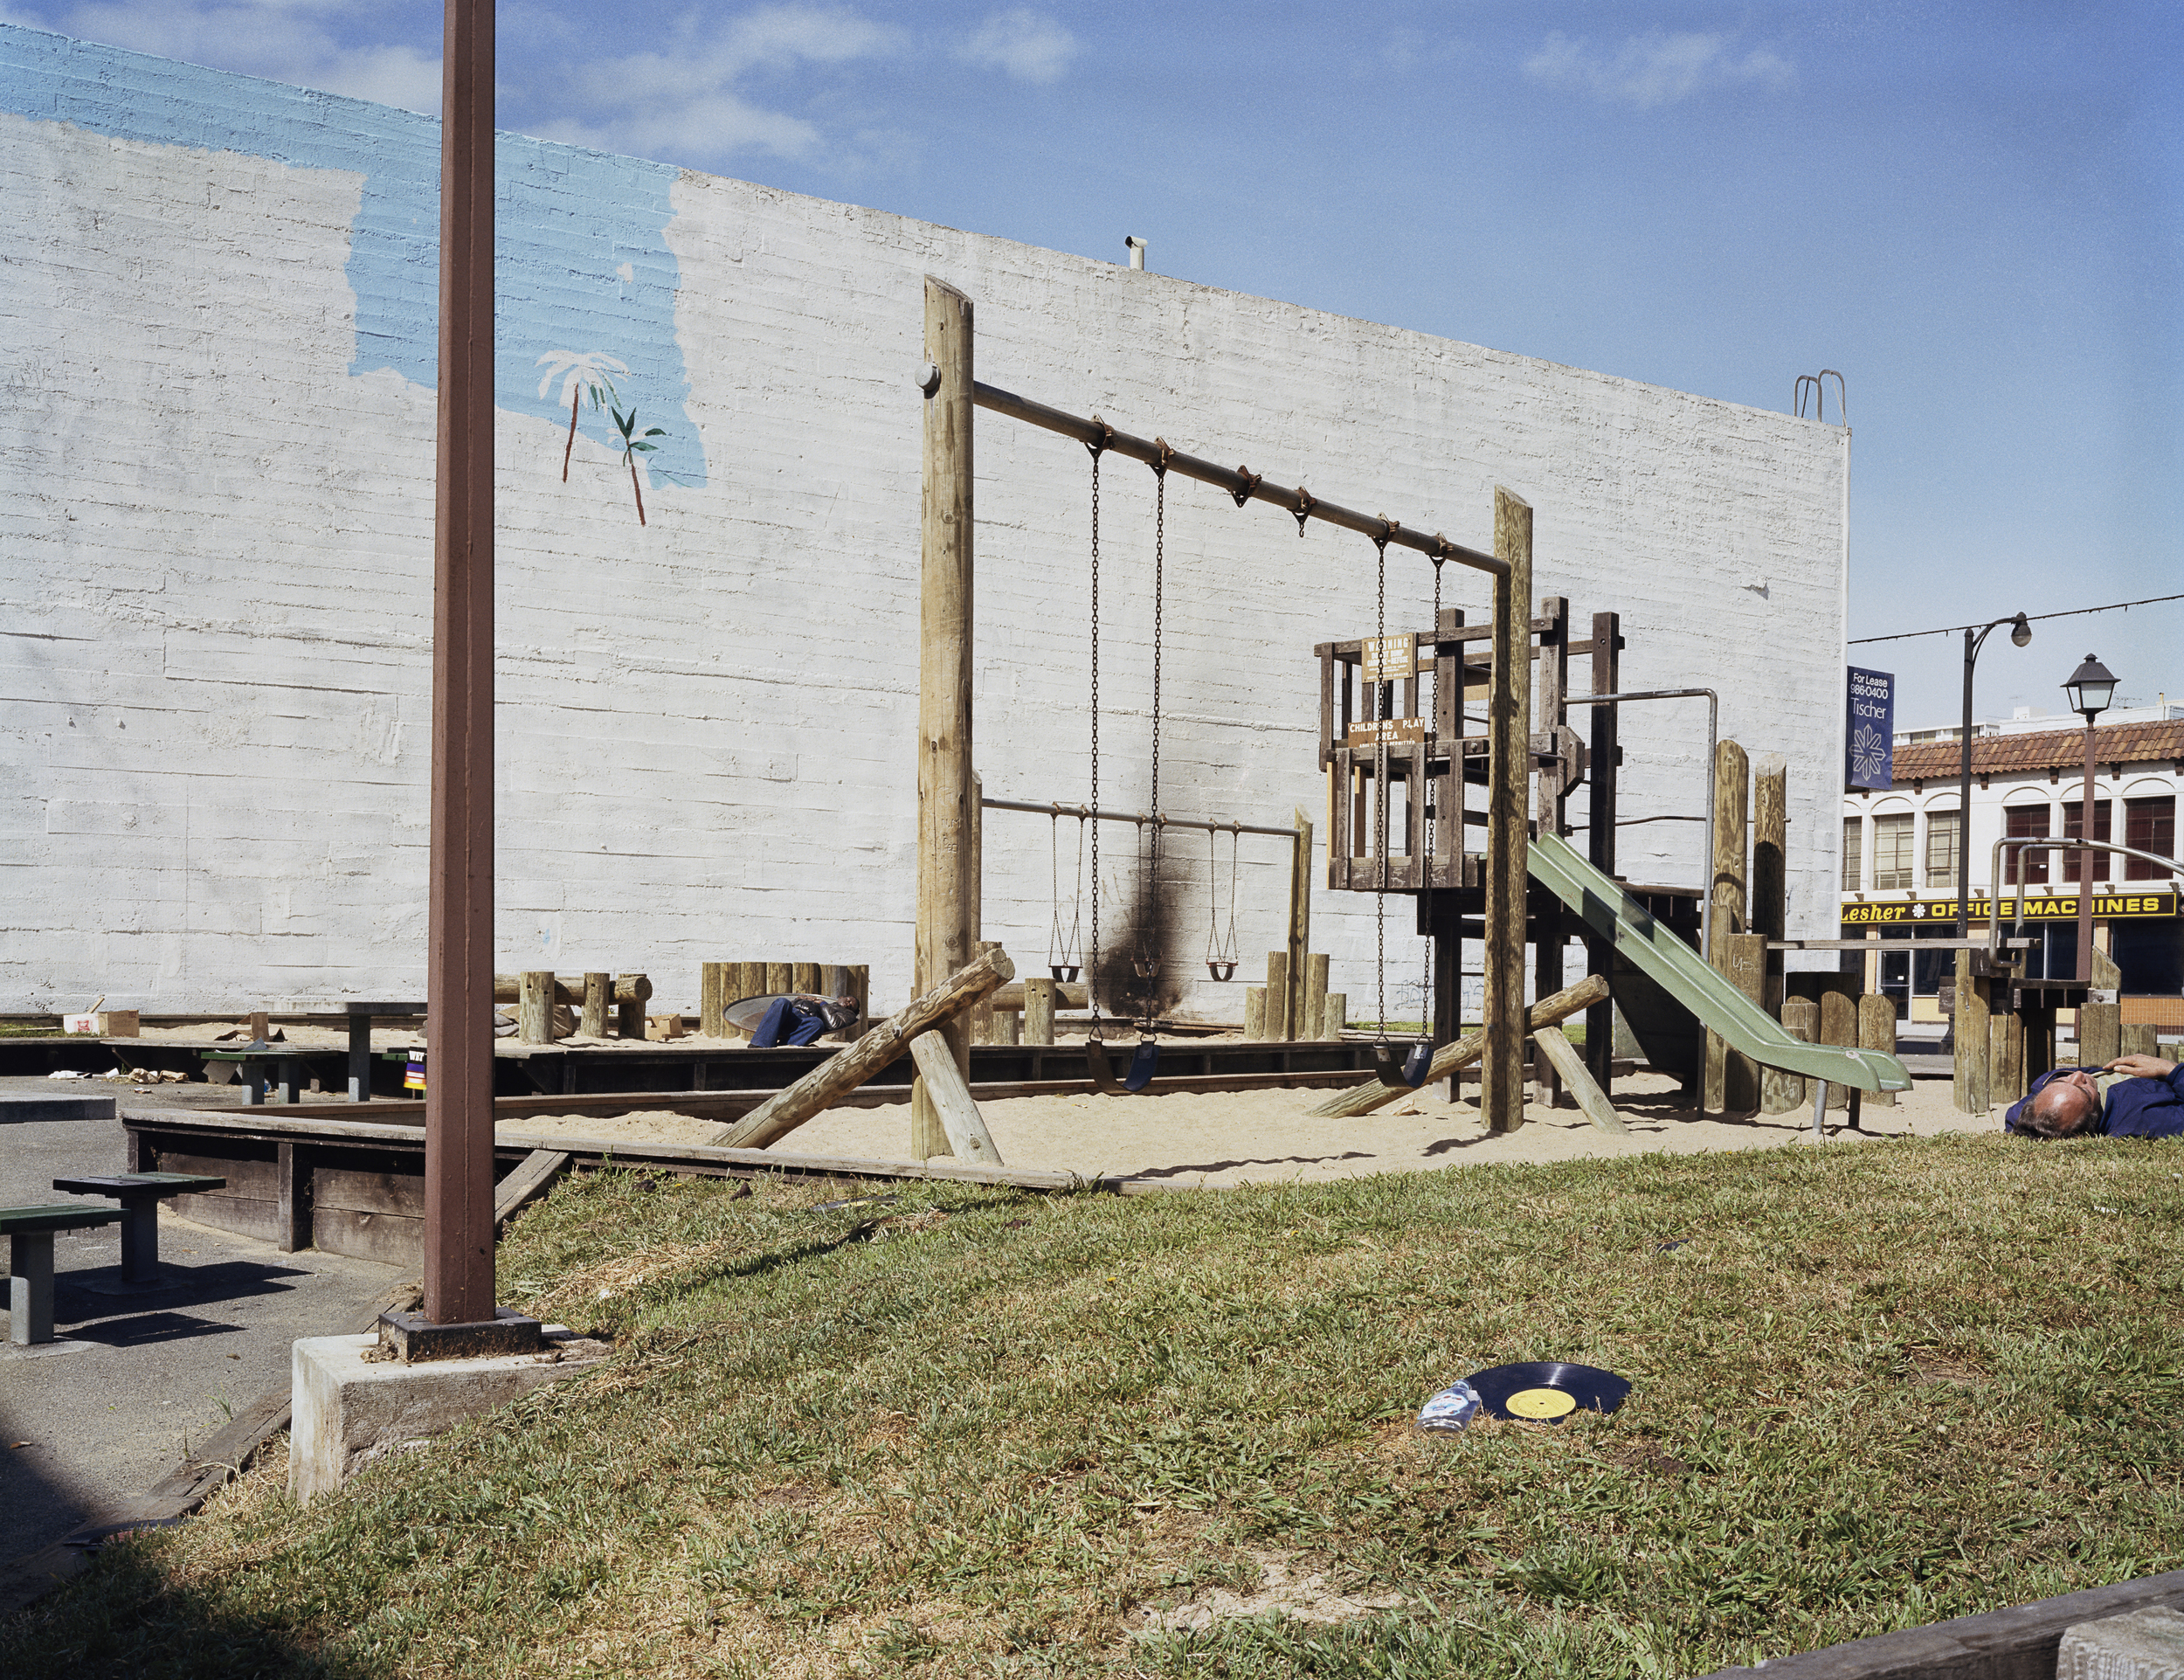 Langton Park, Langton and Howard Streets, 1981 Archival Pigment Print, 2016 16 x 20 inches, edition of 5 20 x 24 inches, edition of 2 30 x 40 inches, edition of 2